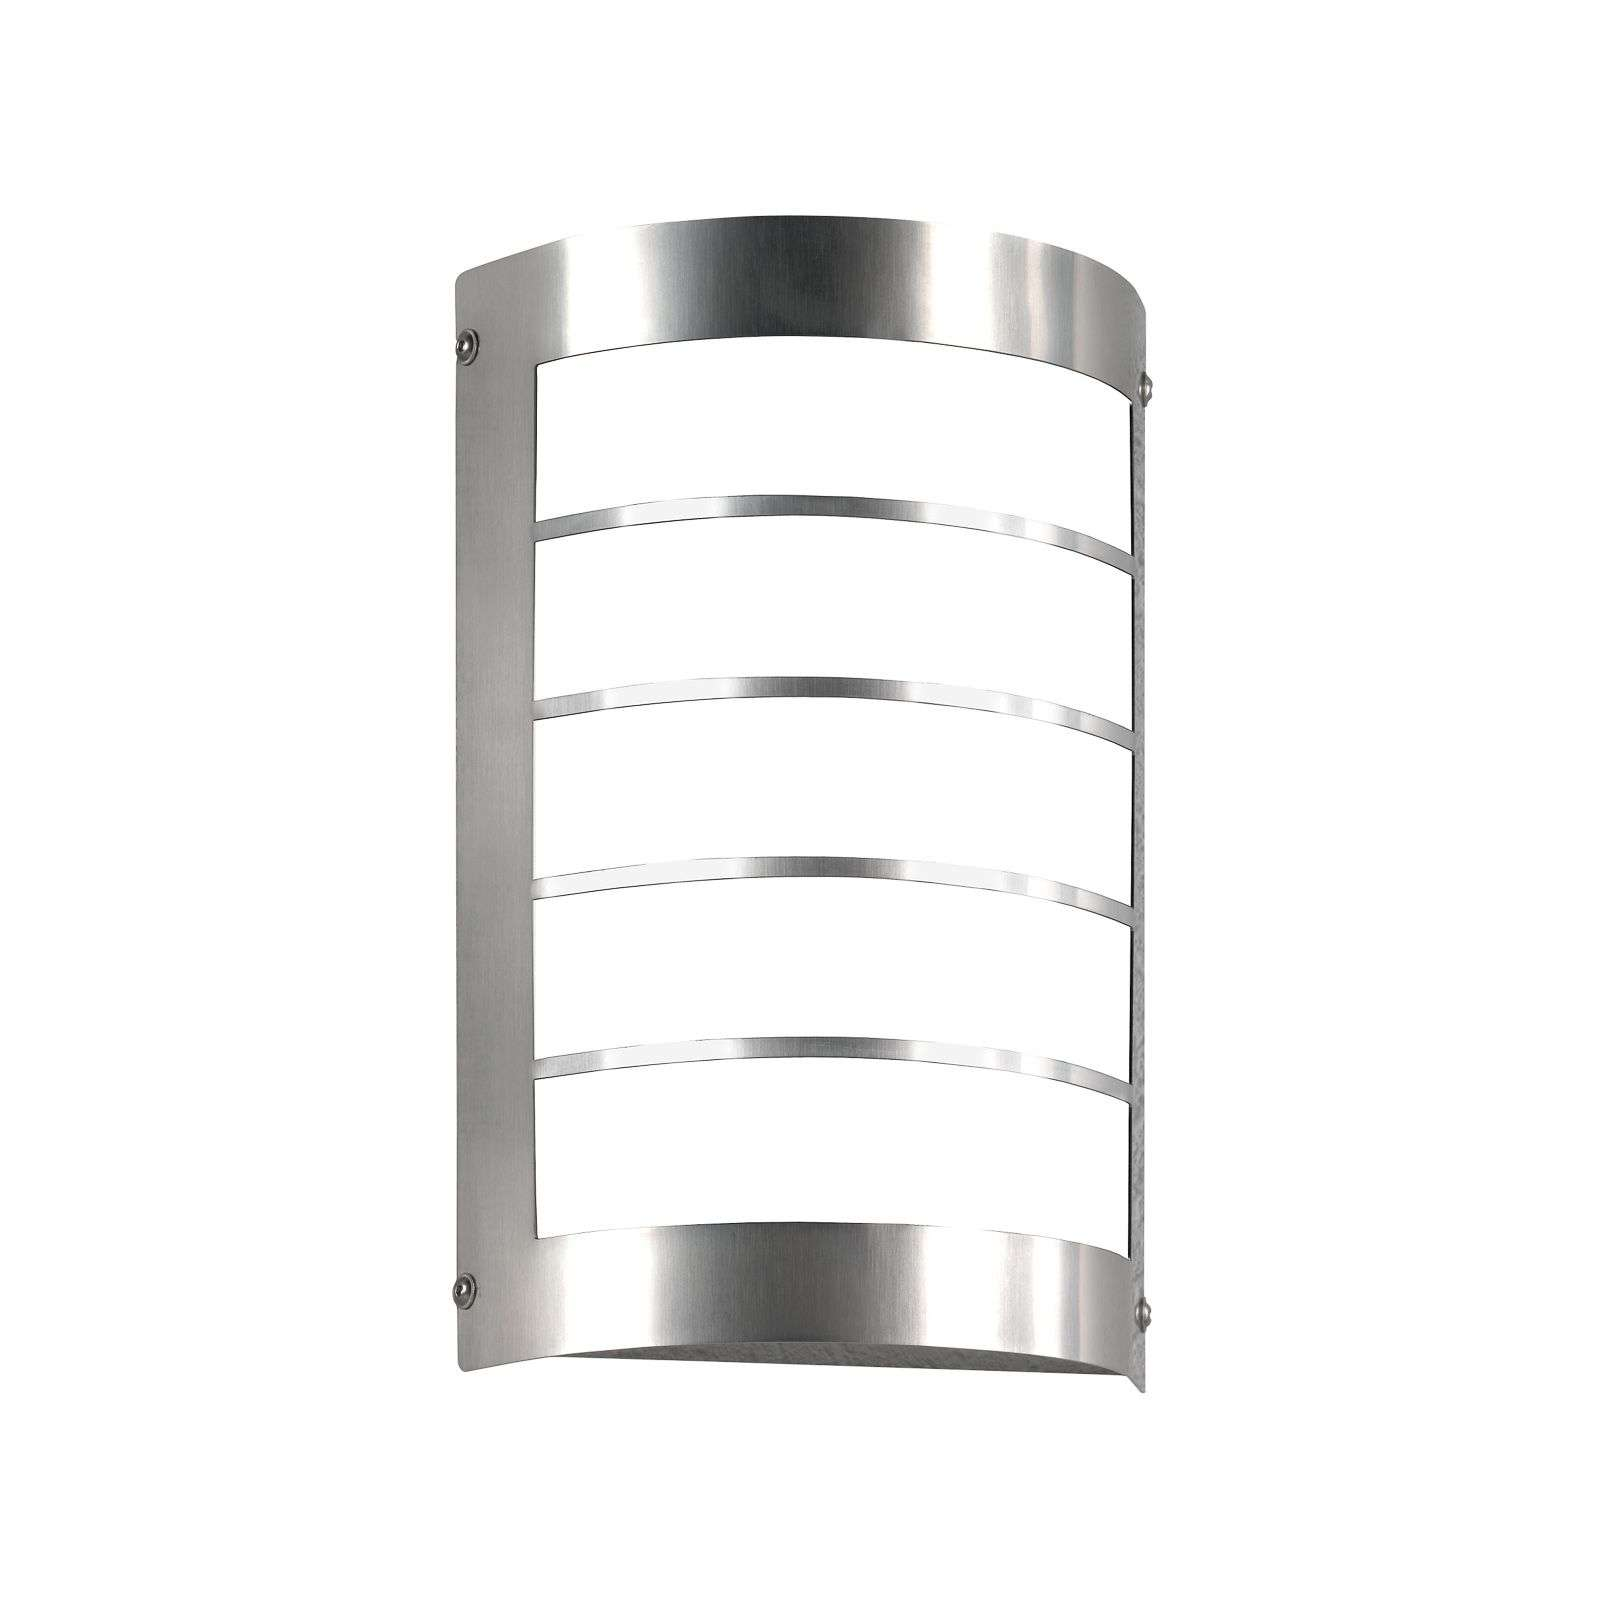 Marco1 modern exterior wall lamp lights marco1 modern exterior wall lamp excl sensor 2011016 31 aloadofball Image collections